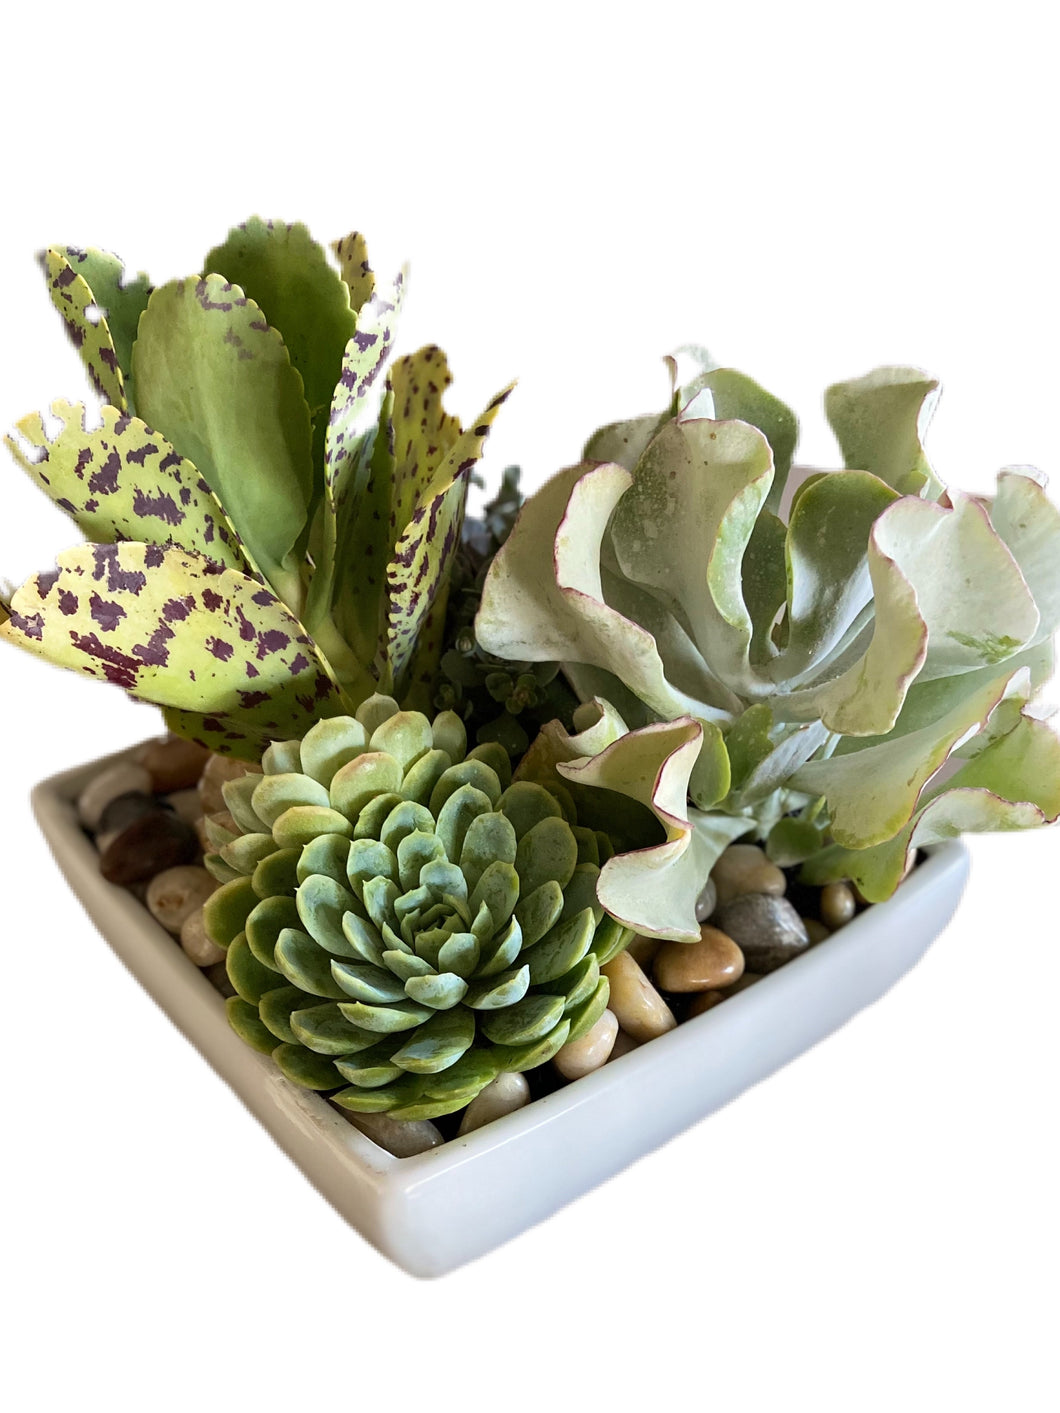 Succulent garden limited-edition 2